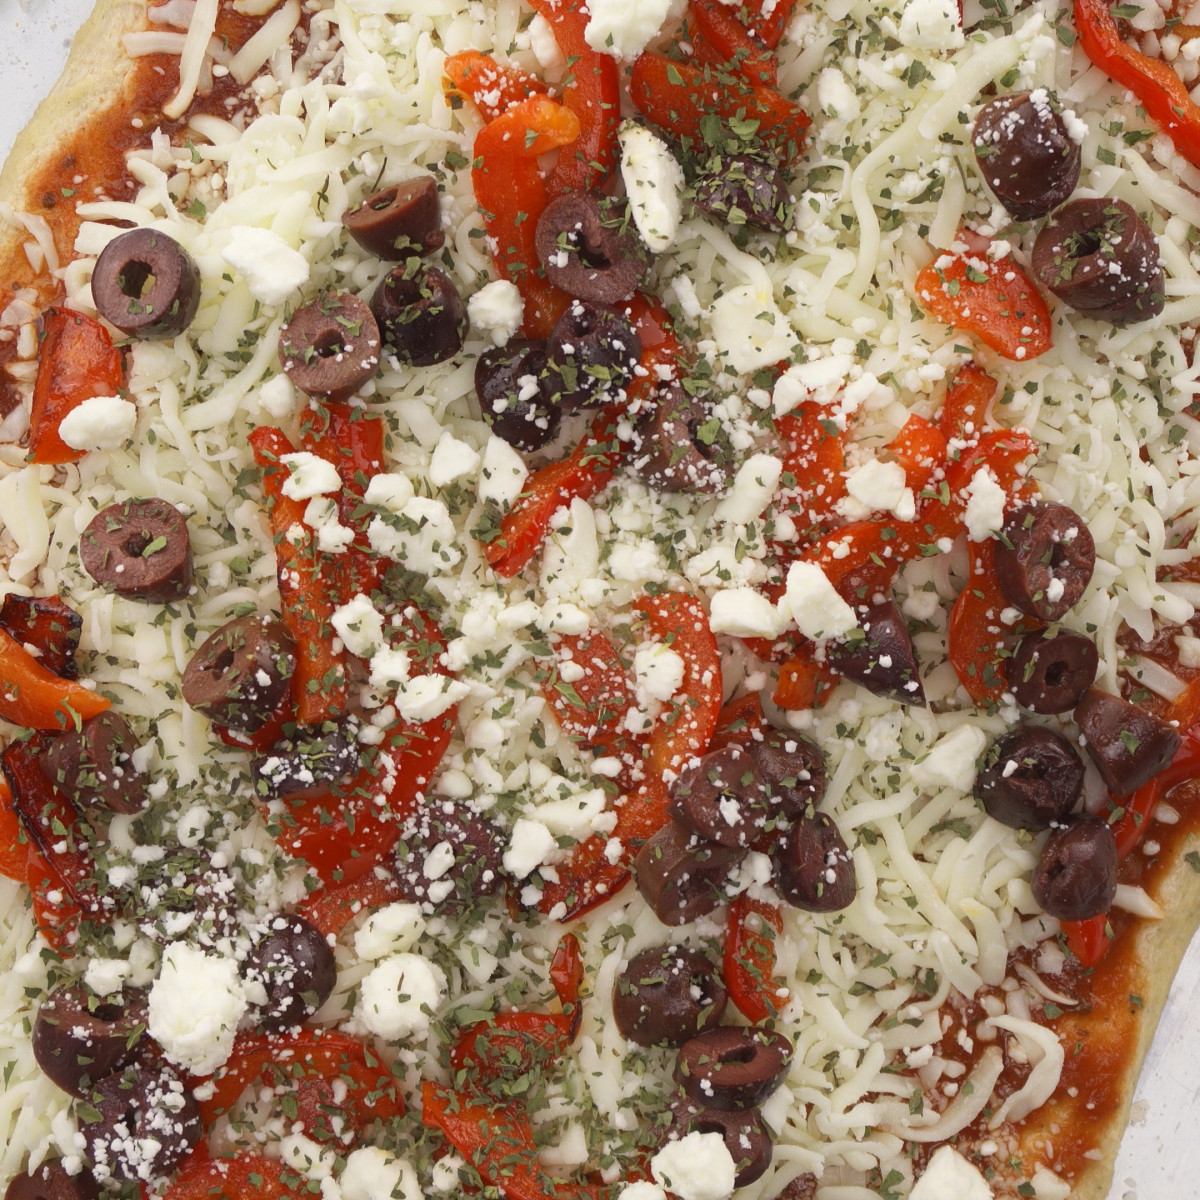 red pepper kalamata olive pizza